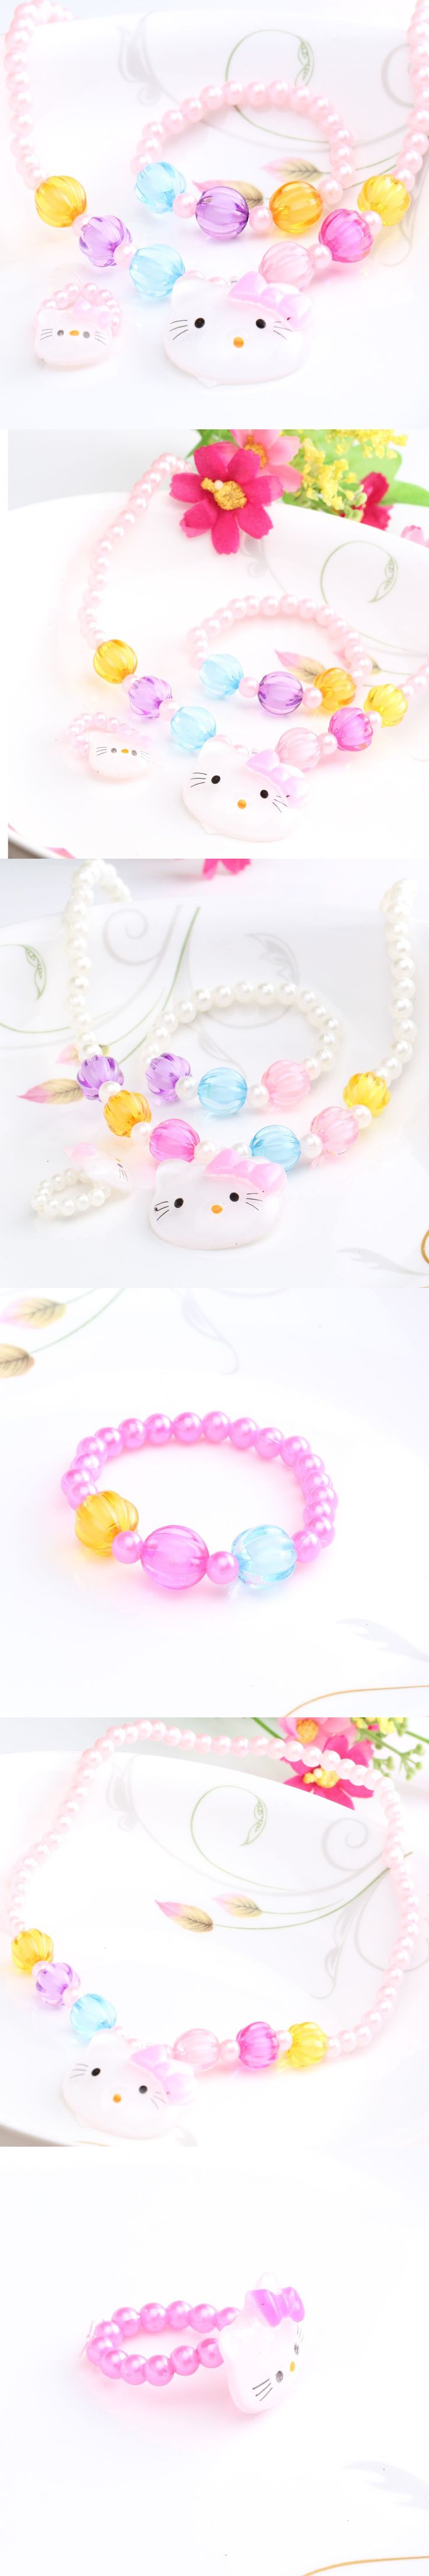 1Set=3pcs Baby Hair Accessories Necklace Headbands Hairpins Baby Hair Band Kitty scrunchy Children Hair Jewelry Accessories